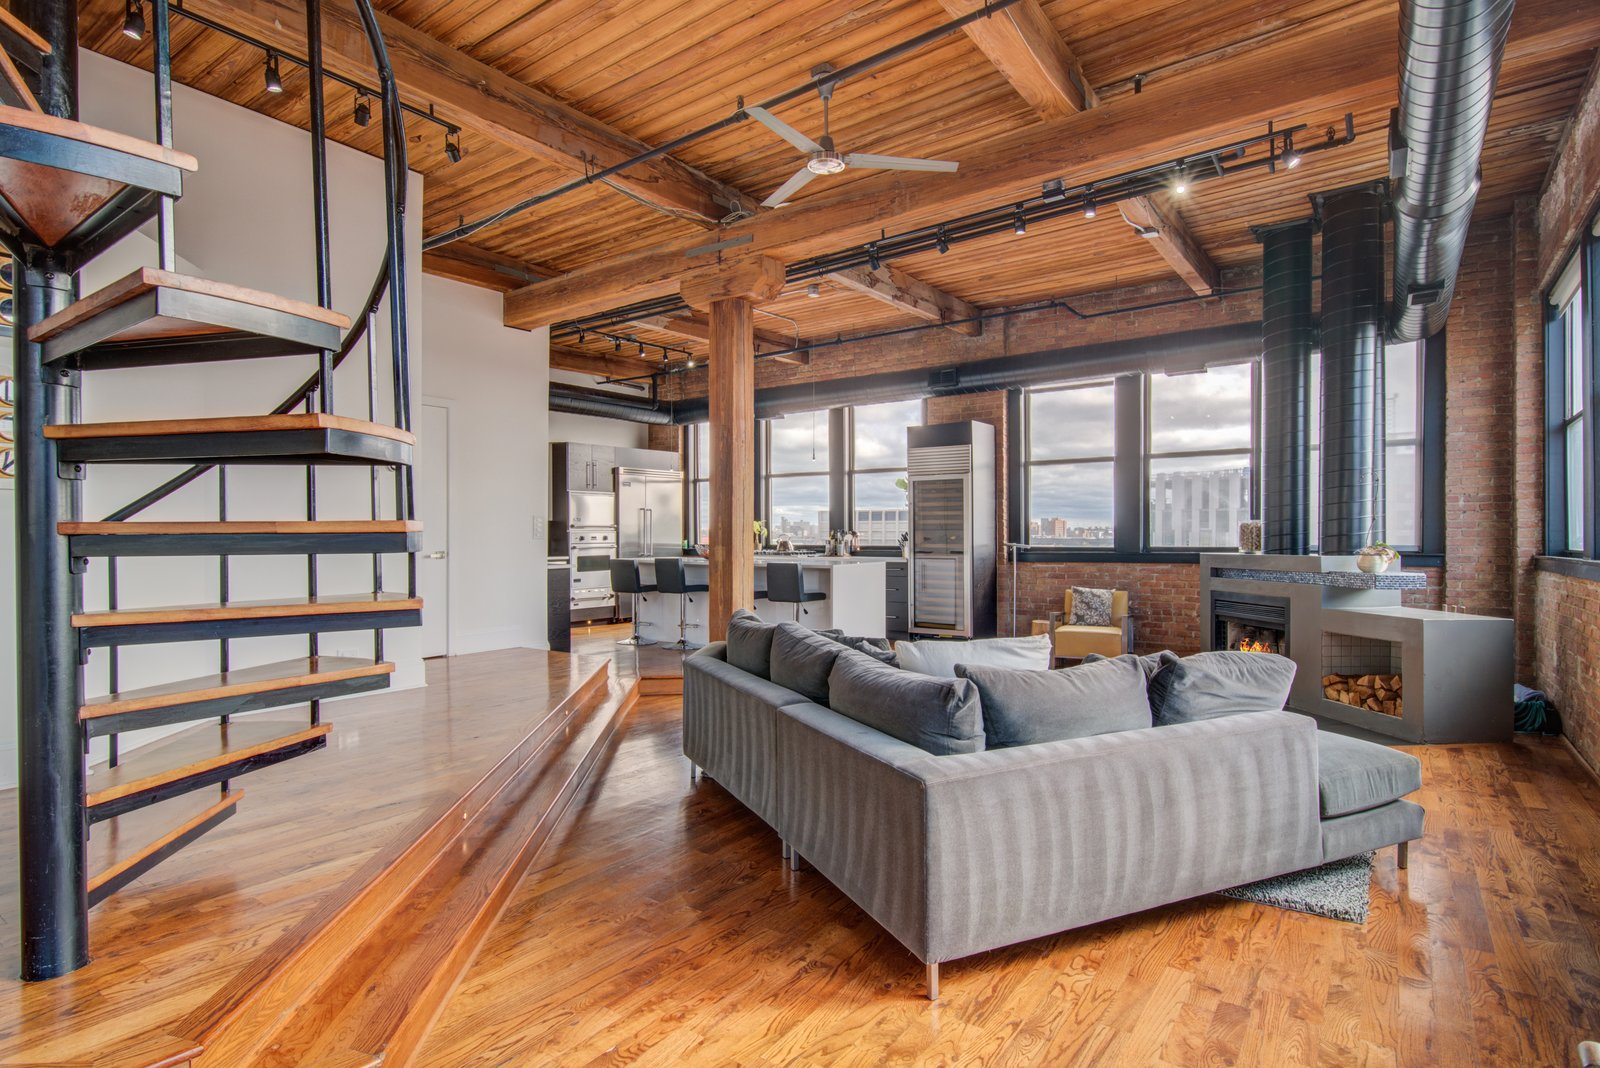 Living Room, Sectional, Chair, Track Lighting, Medium Hardwood Floor, Gas Burning Fireplace, and Ceiling Lighting  Penthouse That Starred on NBC's 'Chicago Fire' Asks $1.775M